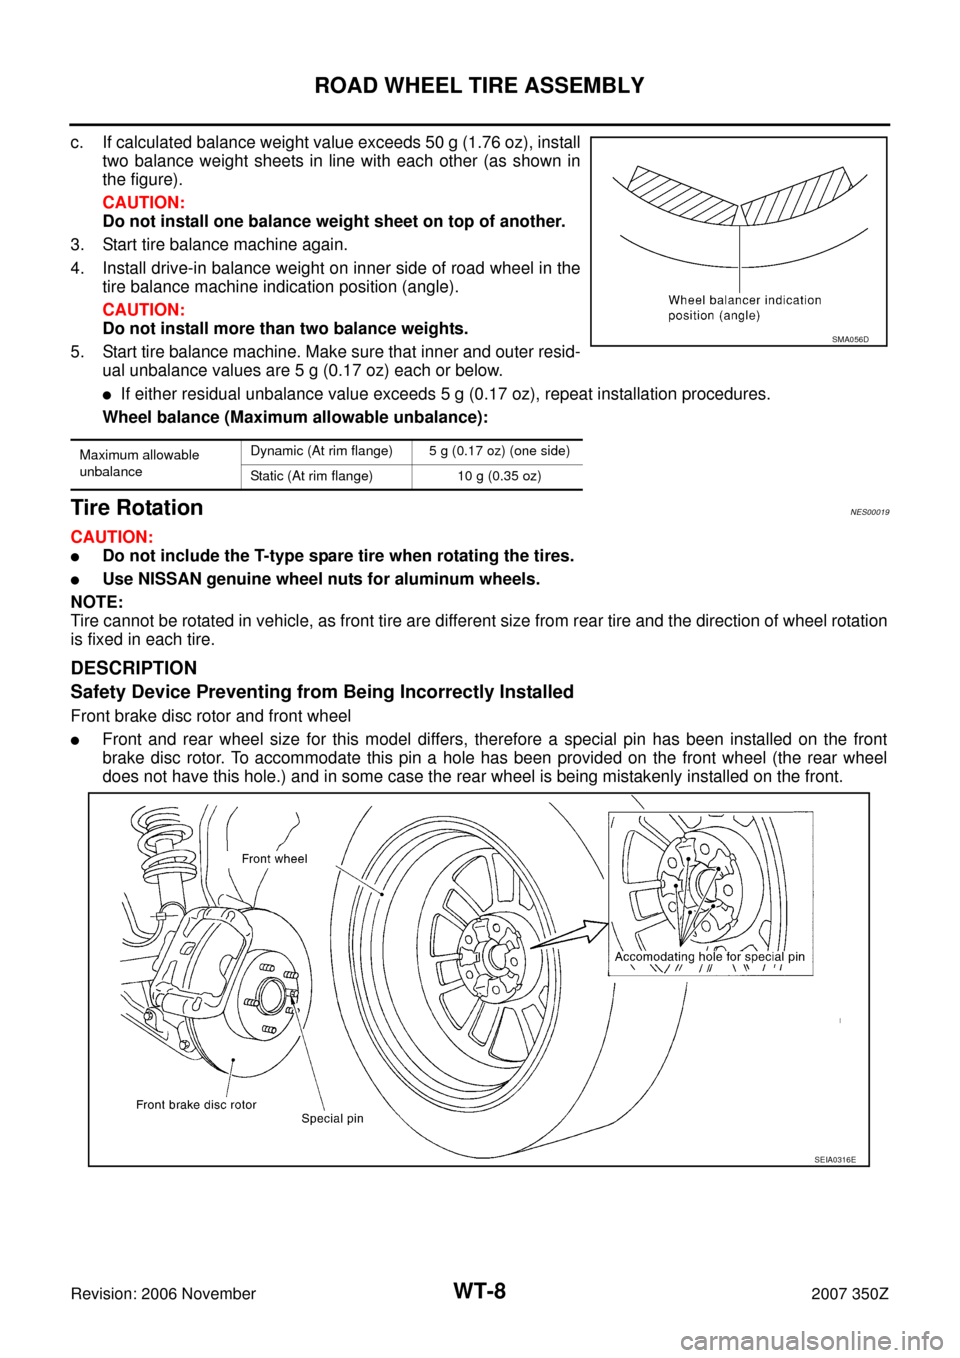 NISSAN 350Z 2007 Z33 Road Wheels And Tires Workshop Manual, Page 8